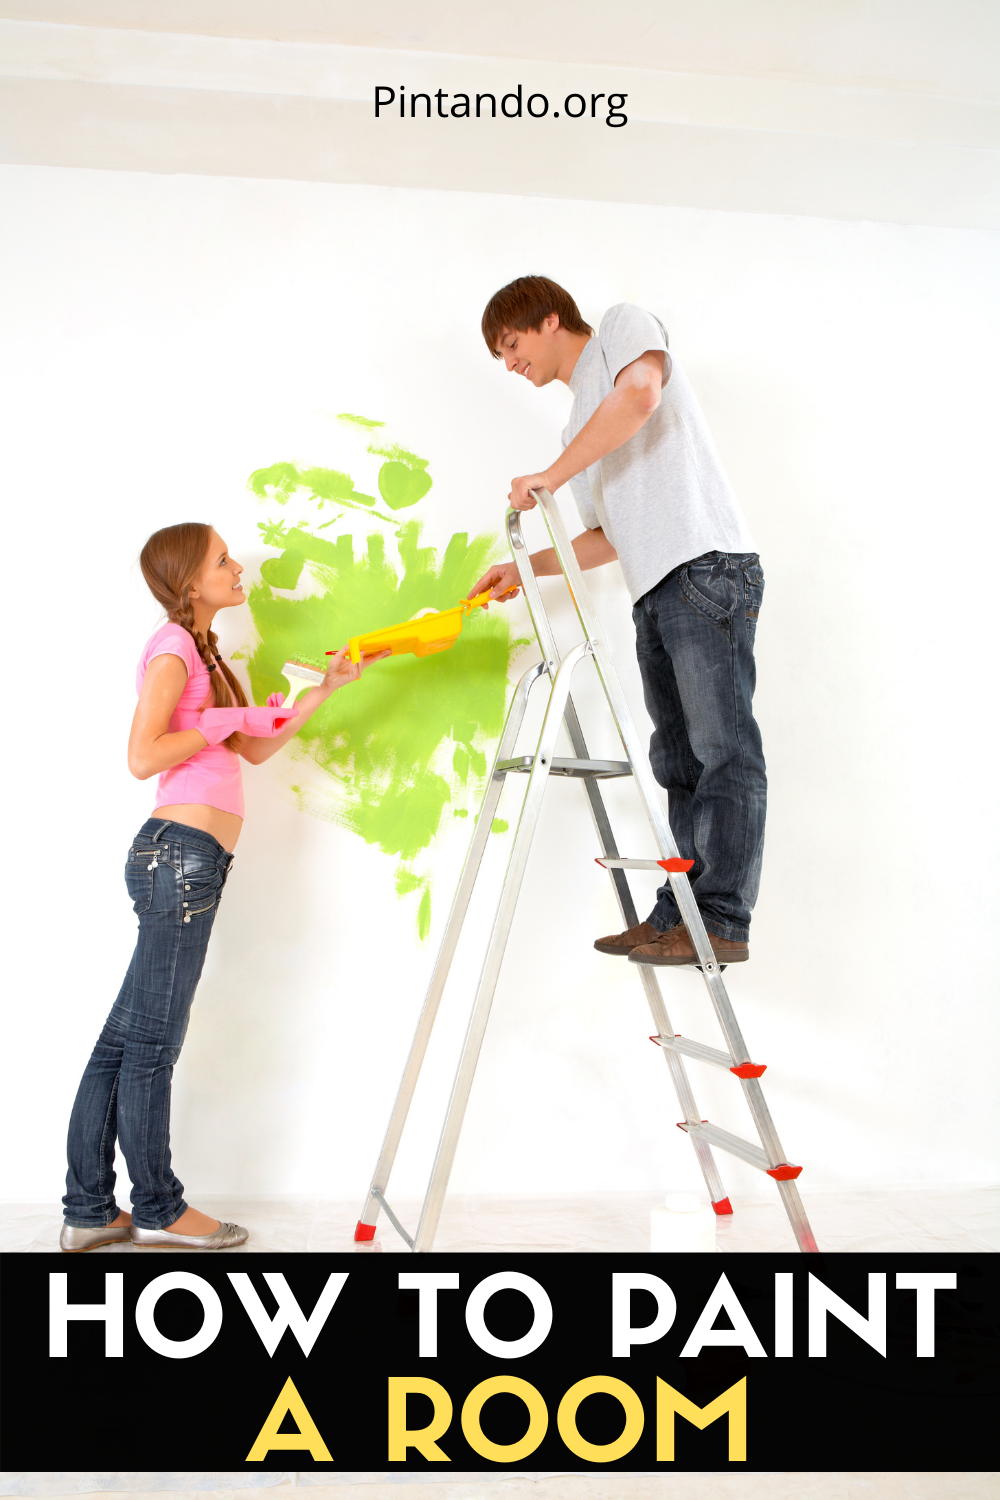 HOW TO PAINT A ROOM (1)